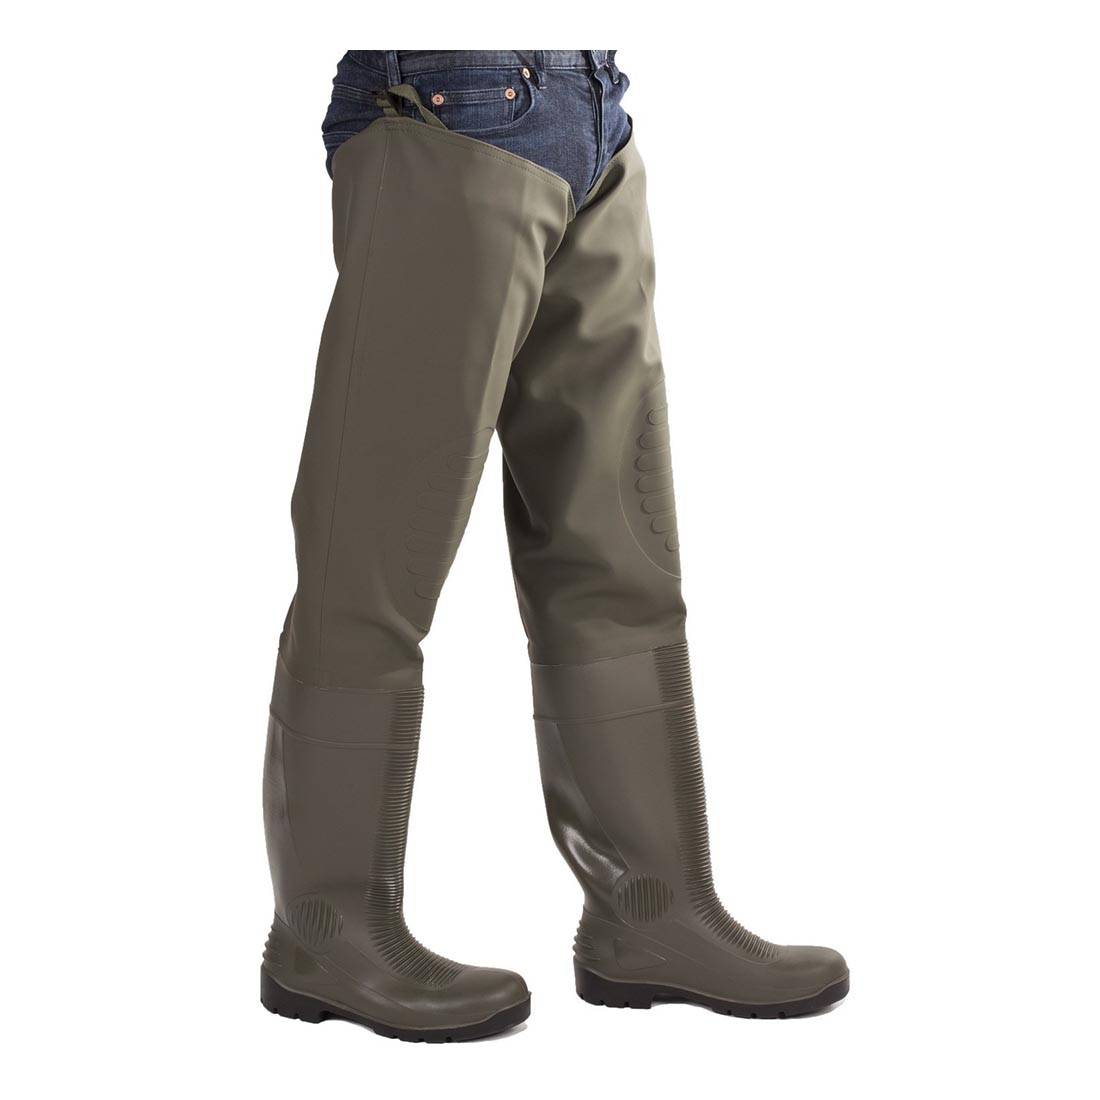 Amblers Safety Forth AS1003TW Waterproof S5 Safety Green Thigh Waders